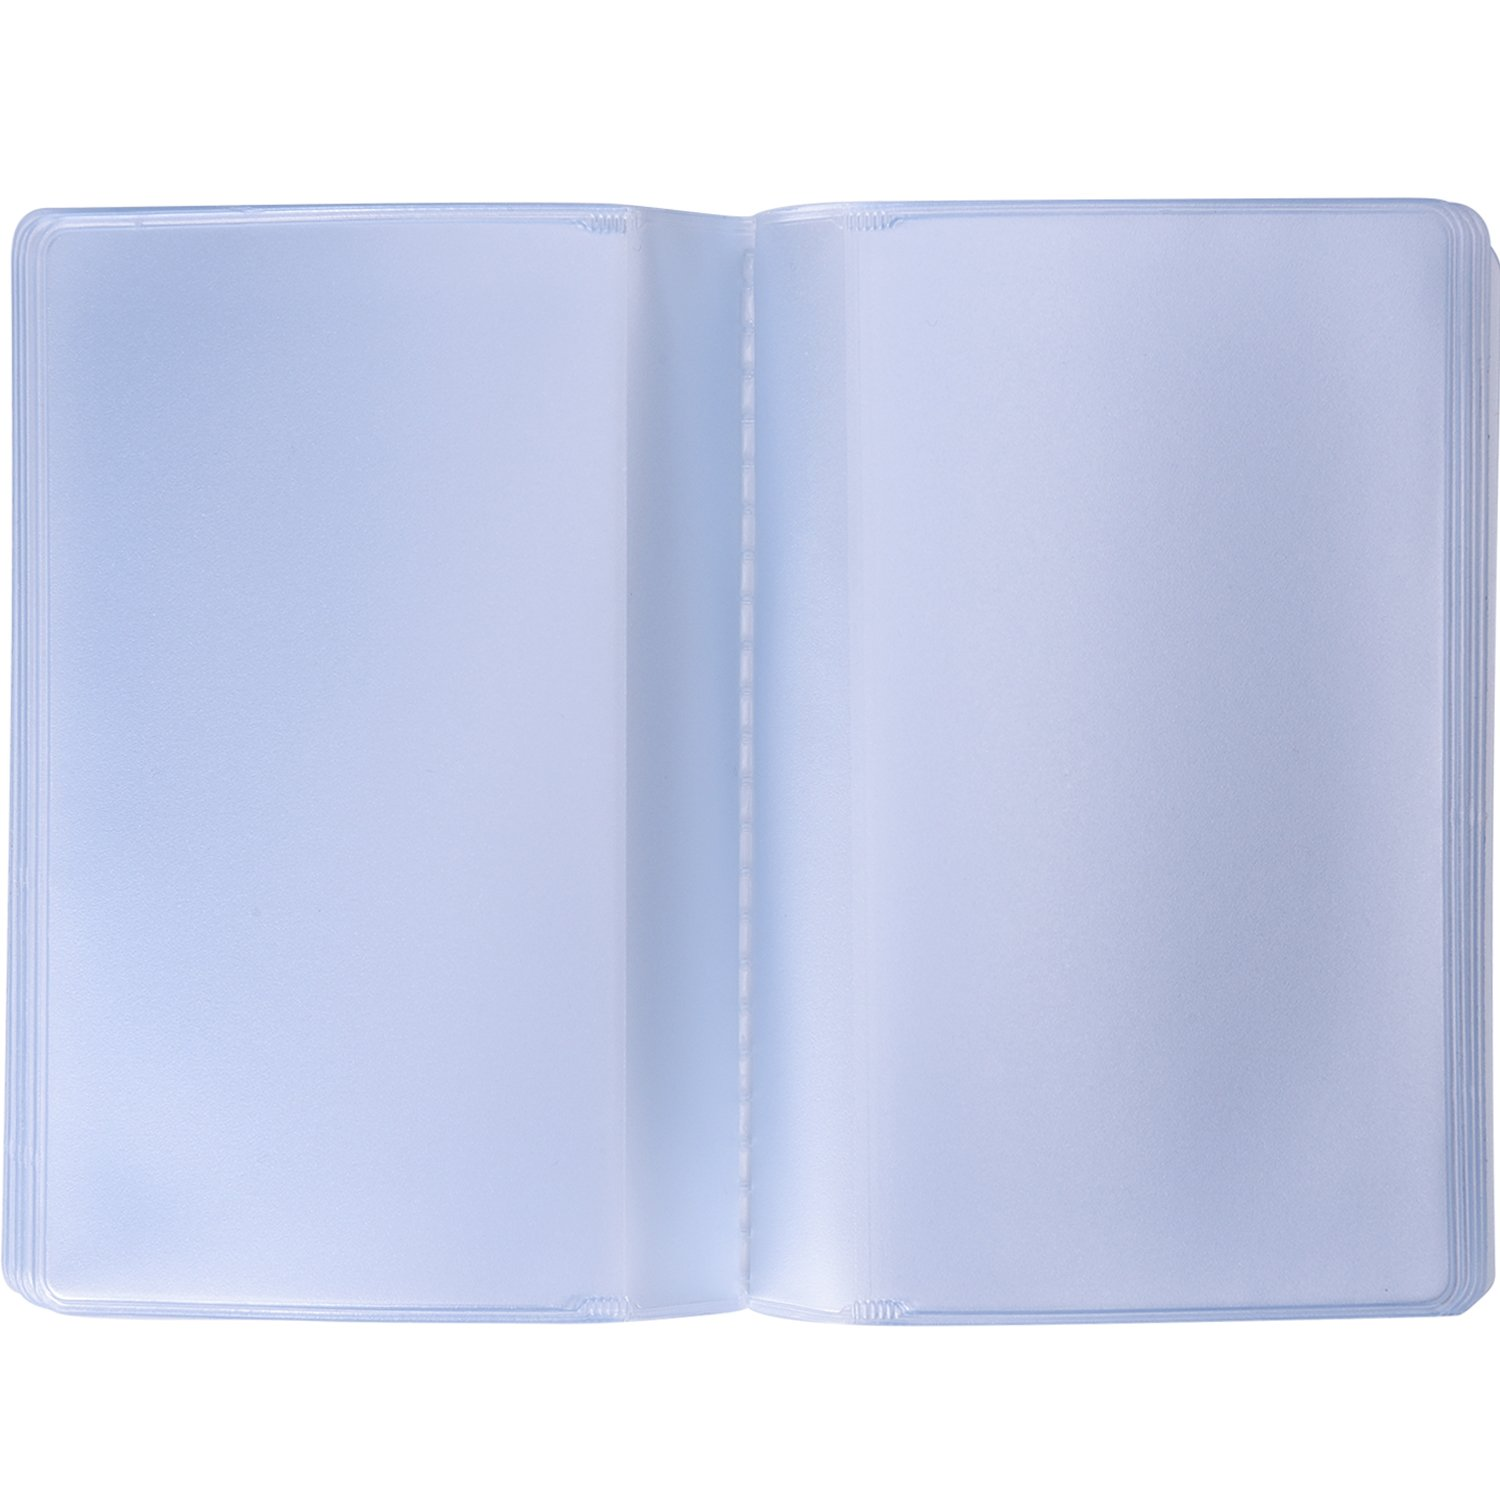 Shappy 2 Pieces Plastic Wallet Insert Credit Card Holder with 10 Page 20 Slots and 10 Page 10 Slots, Transparent 4331221407